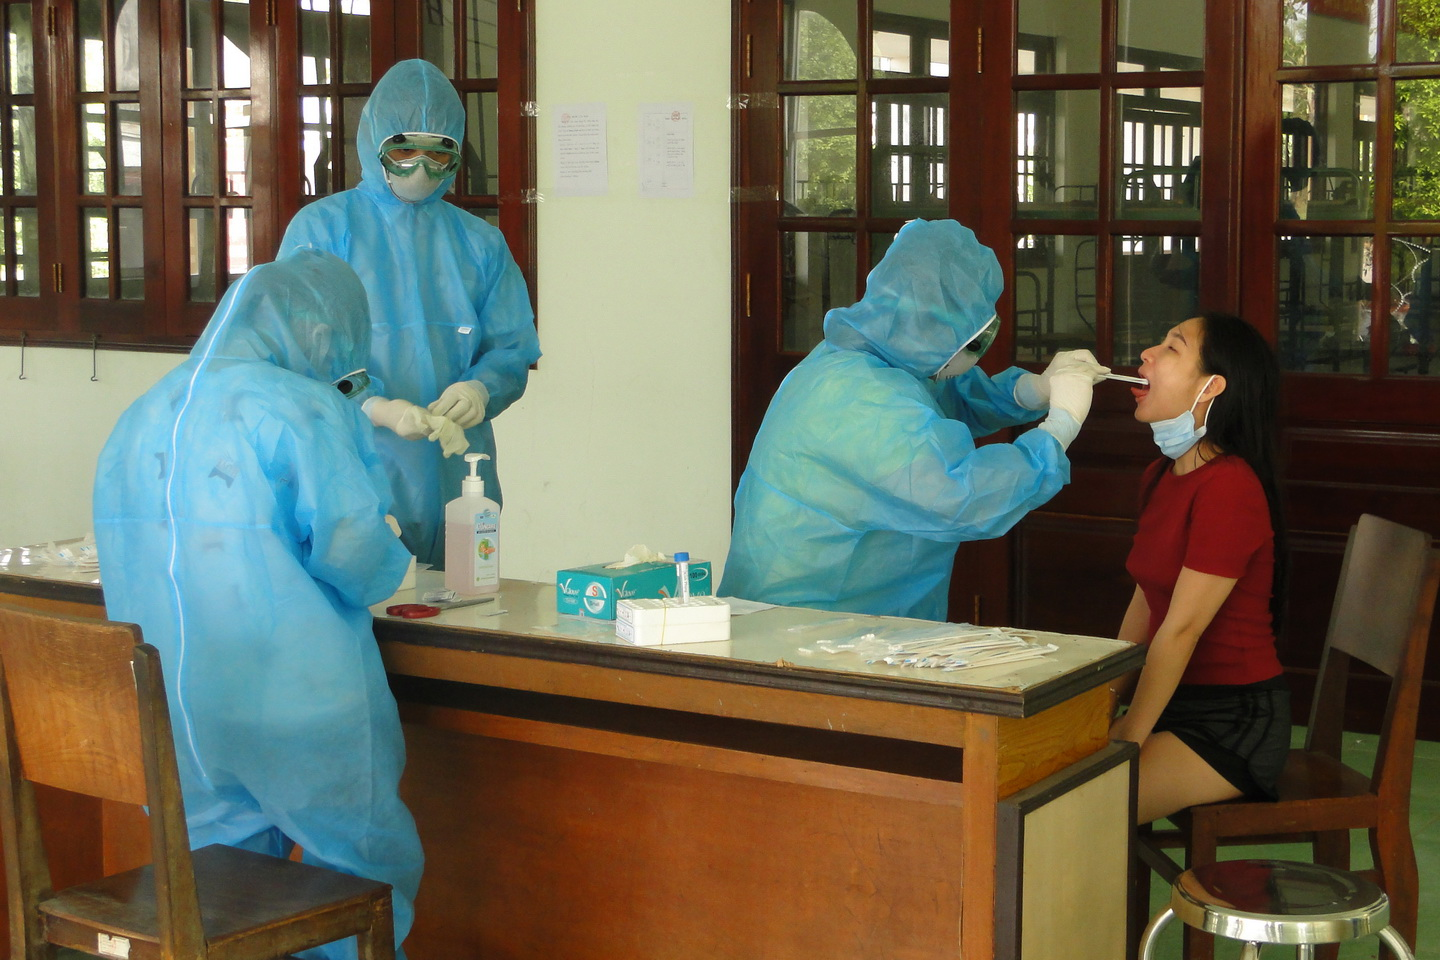 All quarantined people at Tien Giang Military School tested negative for COVID-19